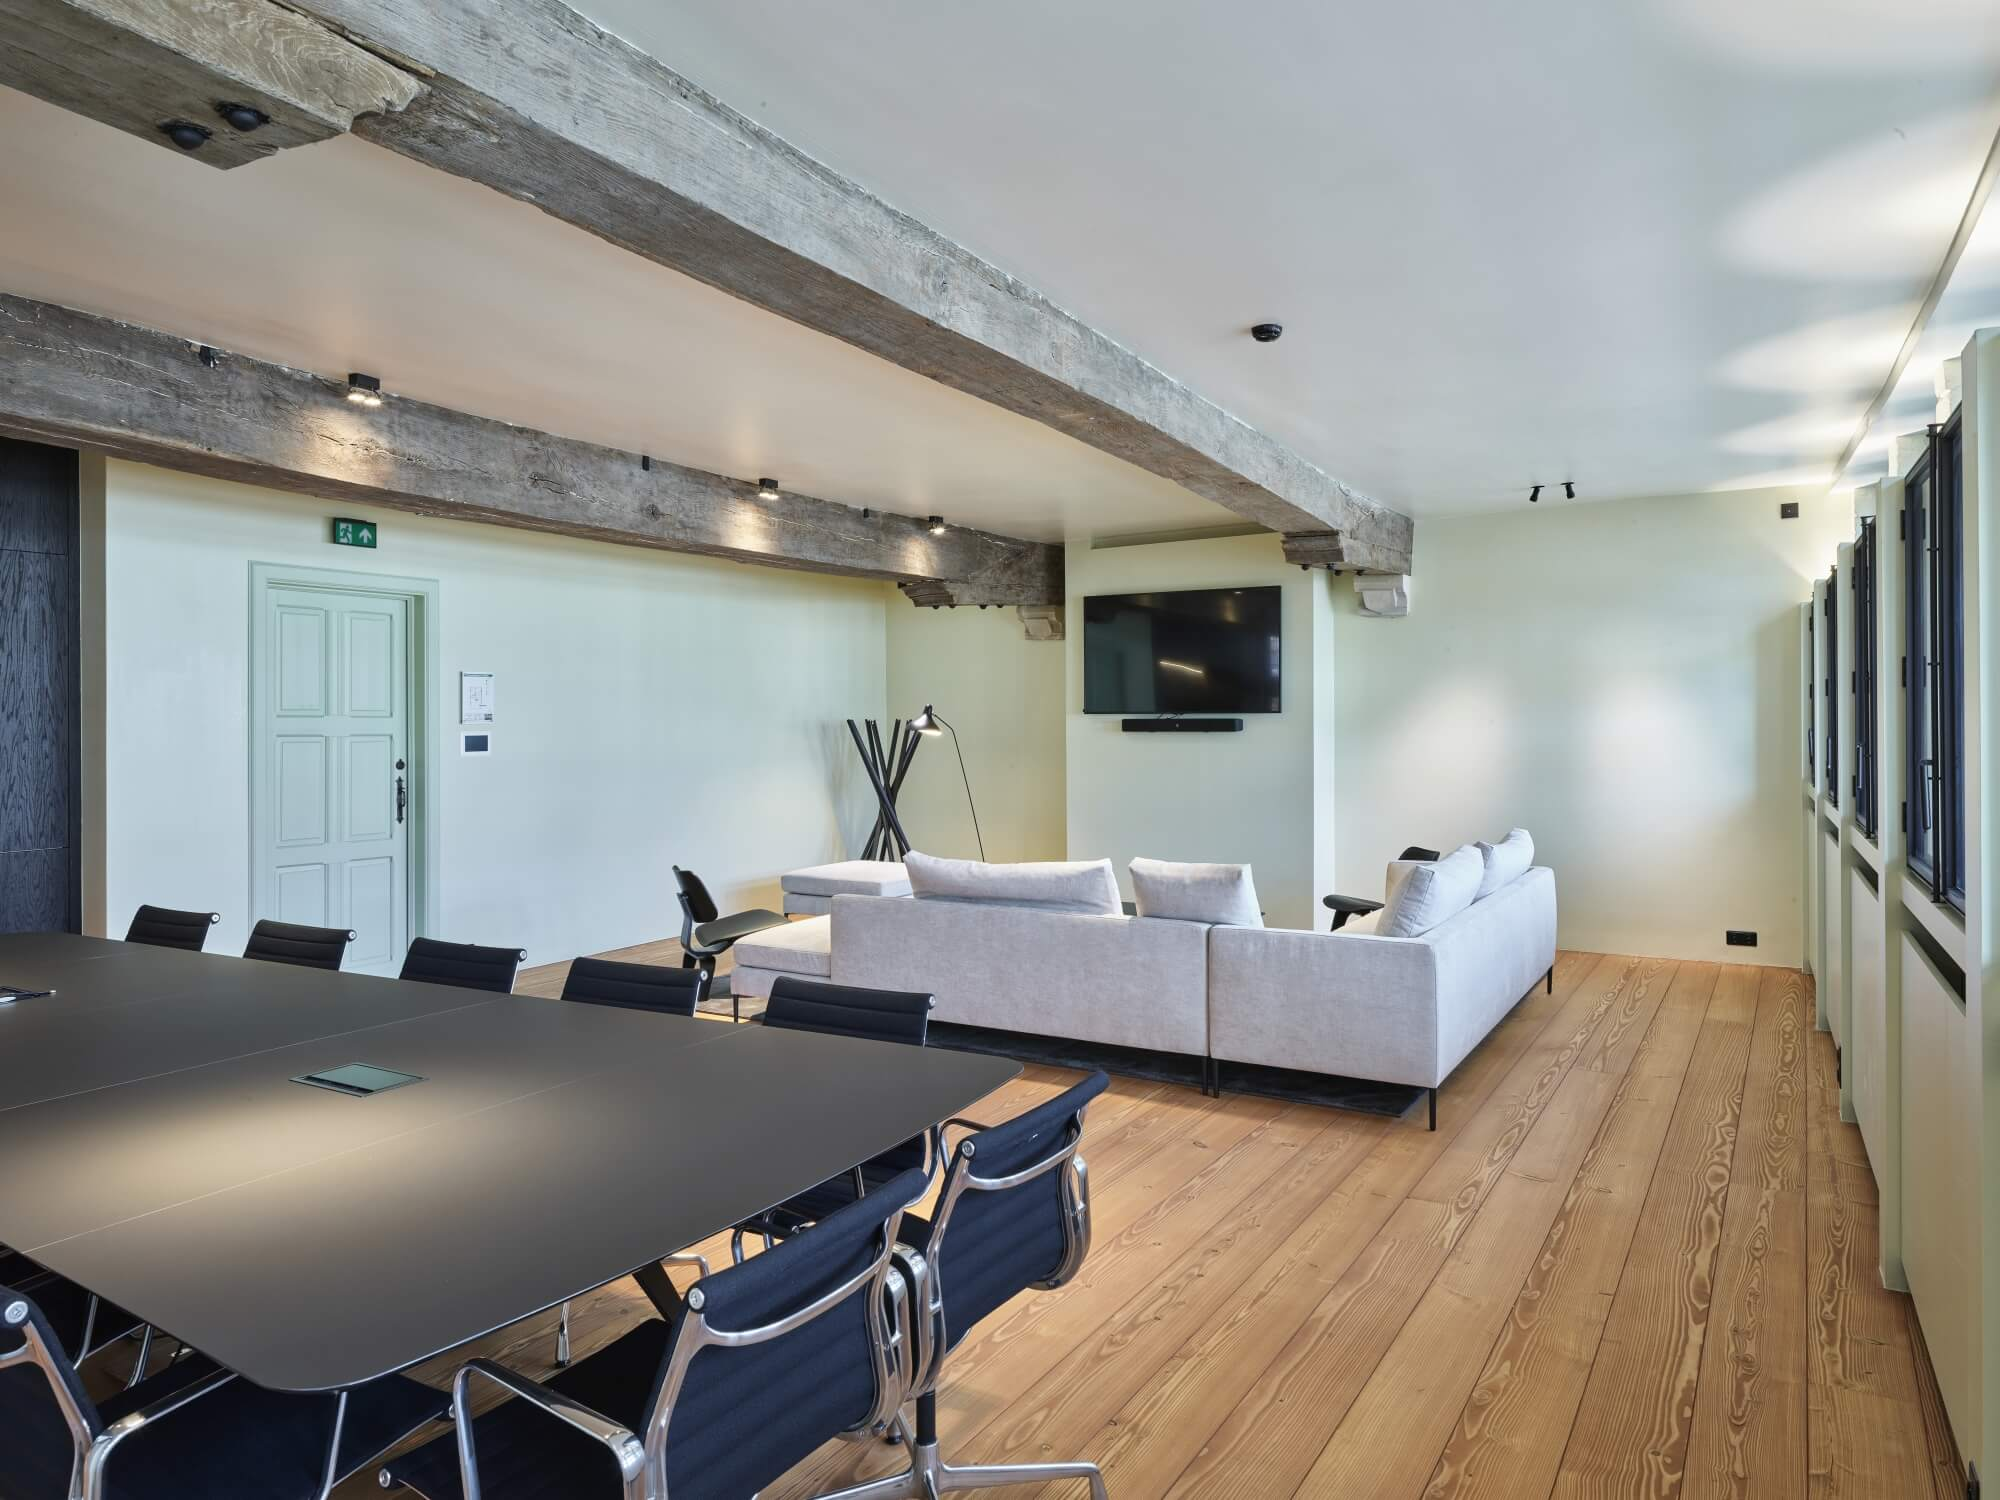 Conference room with conference table and couches and hardwood flooring.